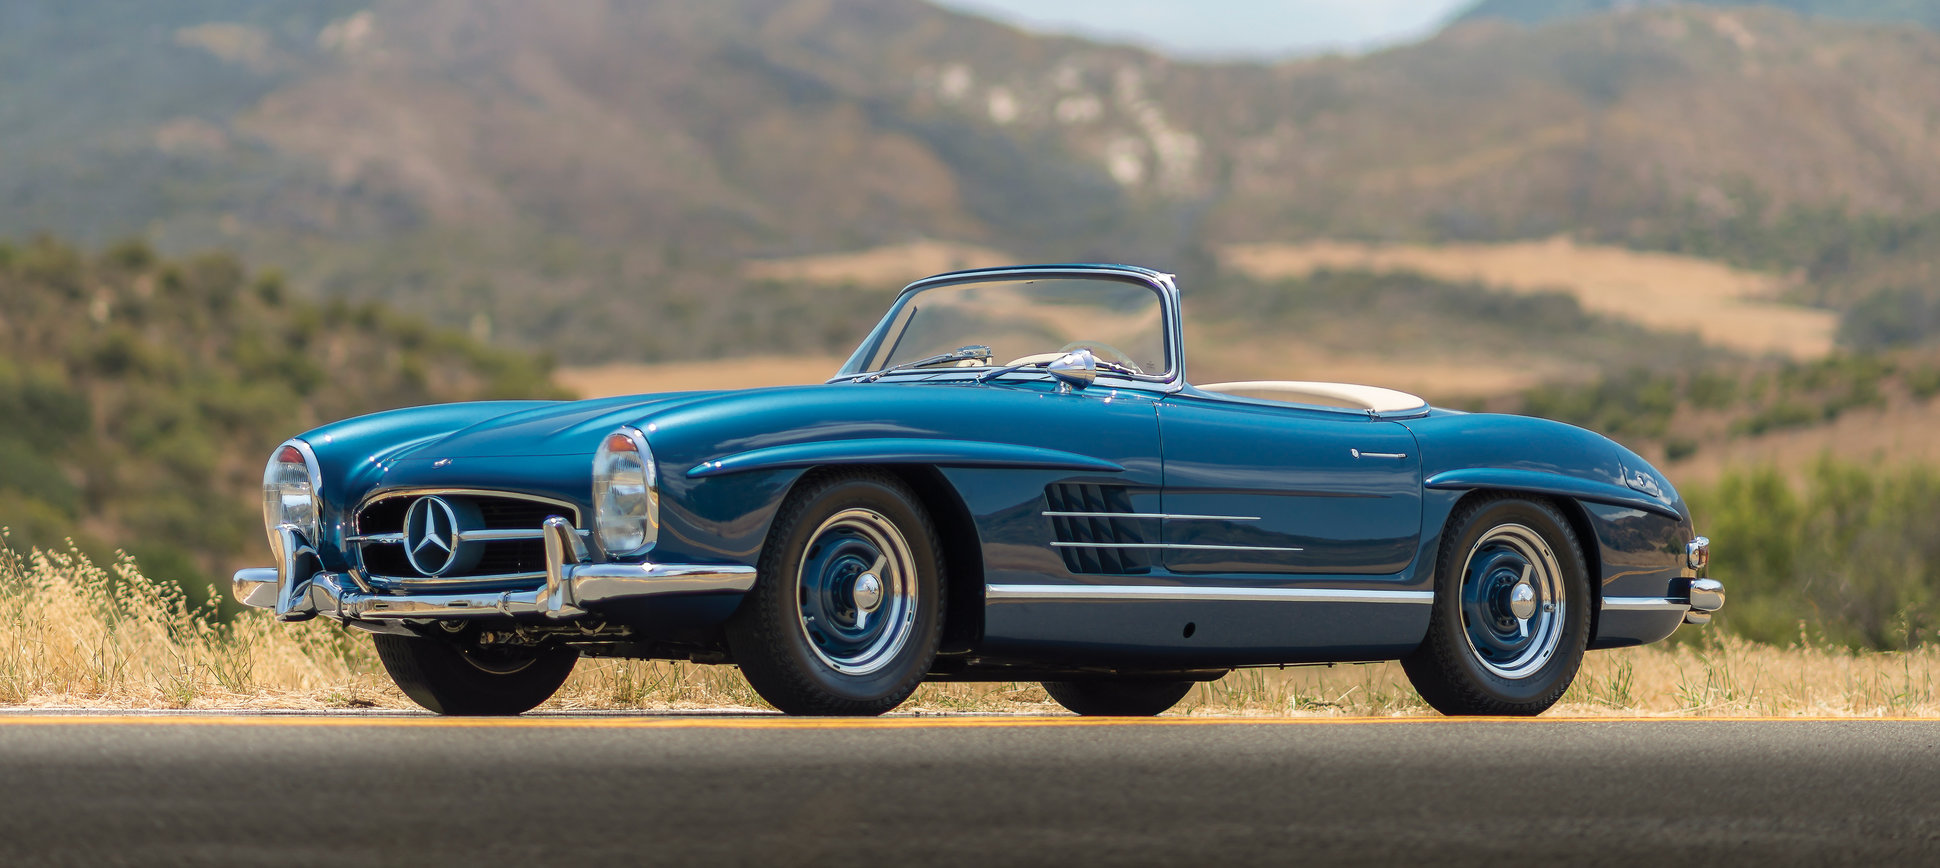 The Most Drop-Dead Gorgeous Cars at the Monterey Auctions This Weekend